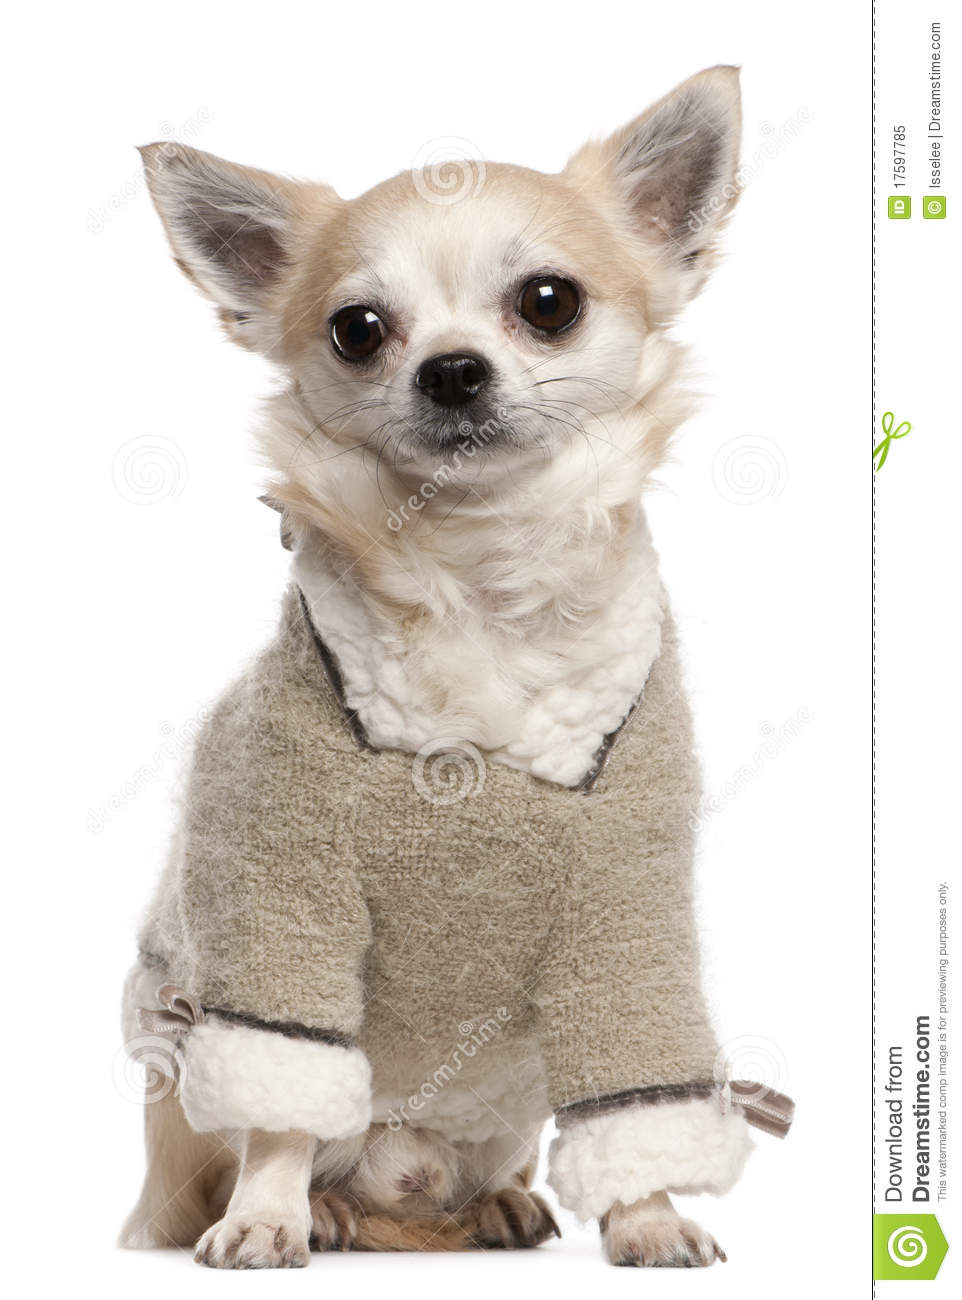 chihuahua wearing sweater 4 years old sitting stock image image 17597785. Black Bedroom Furniture Sets. Home Design Ideas